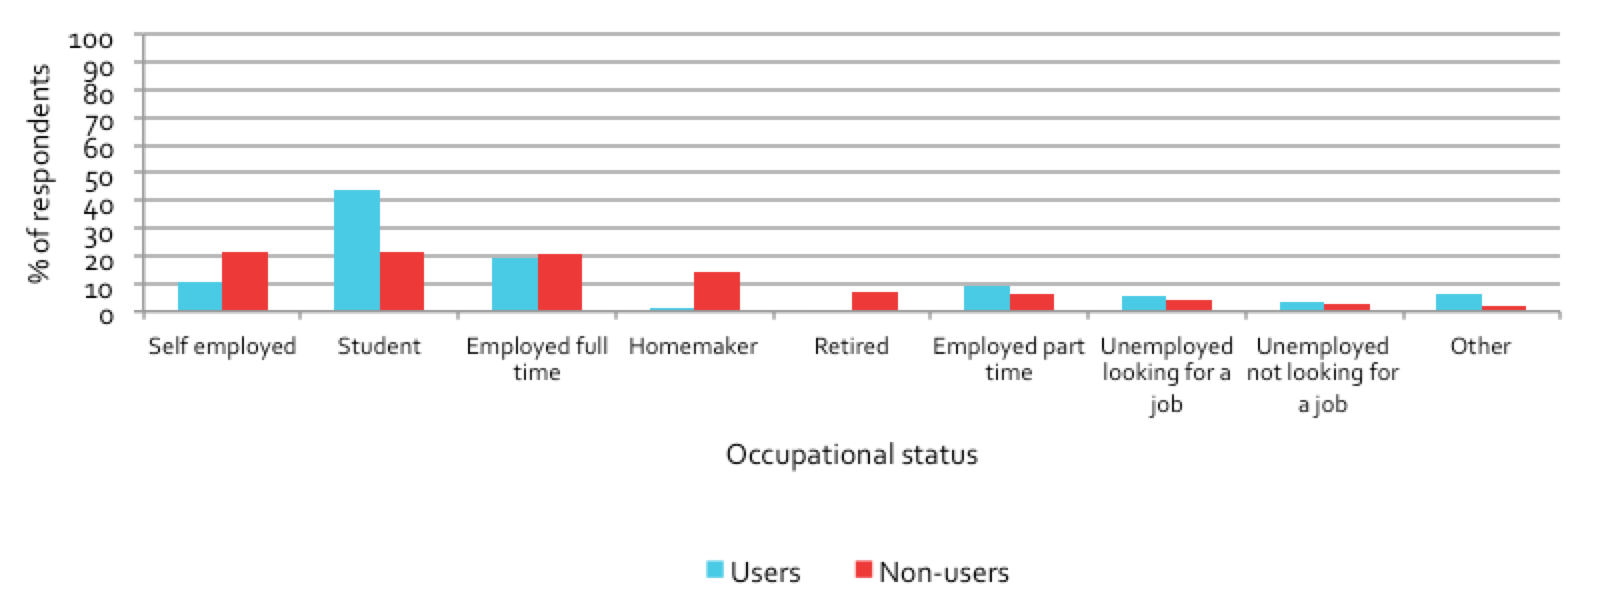 Figure 6.5: Comparison of users and non-users by employment status